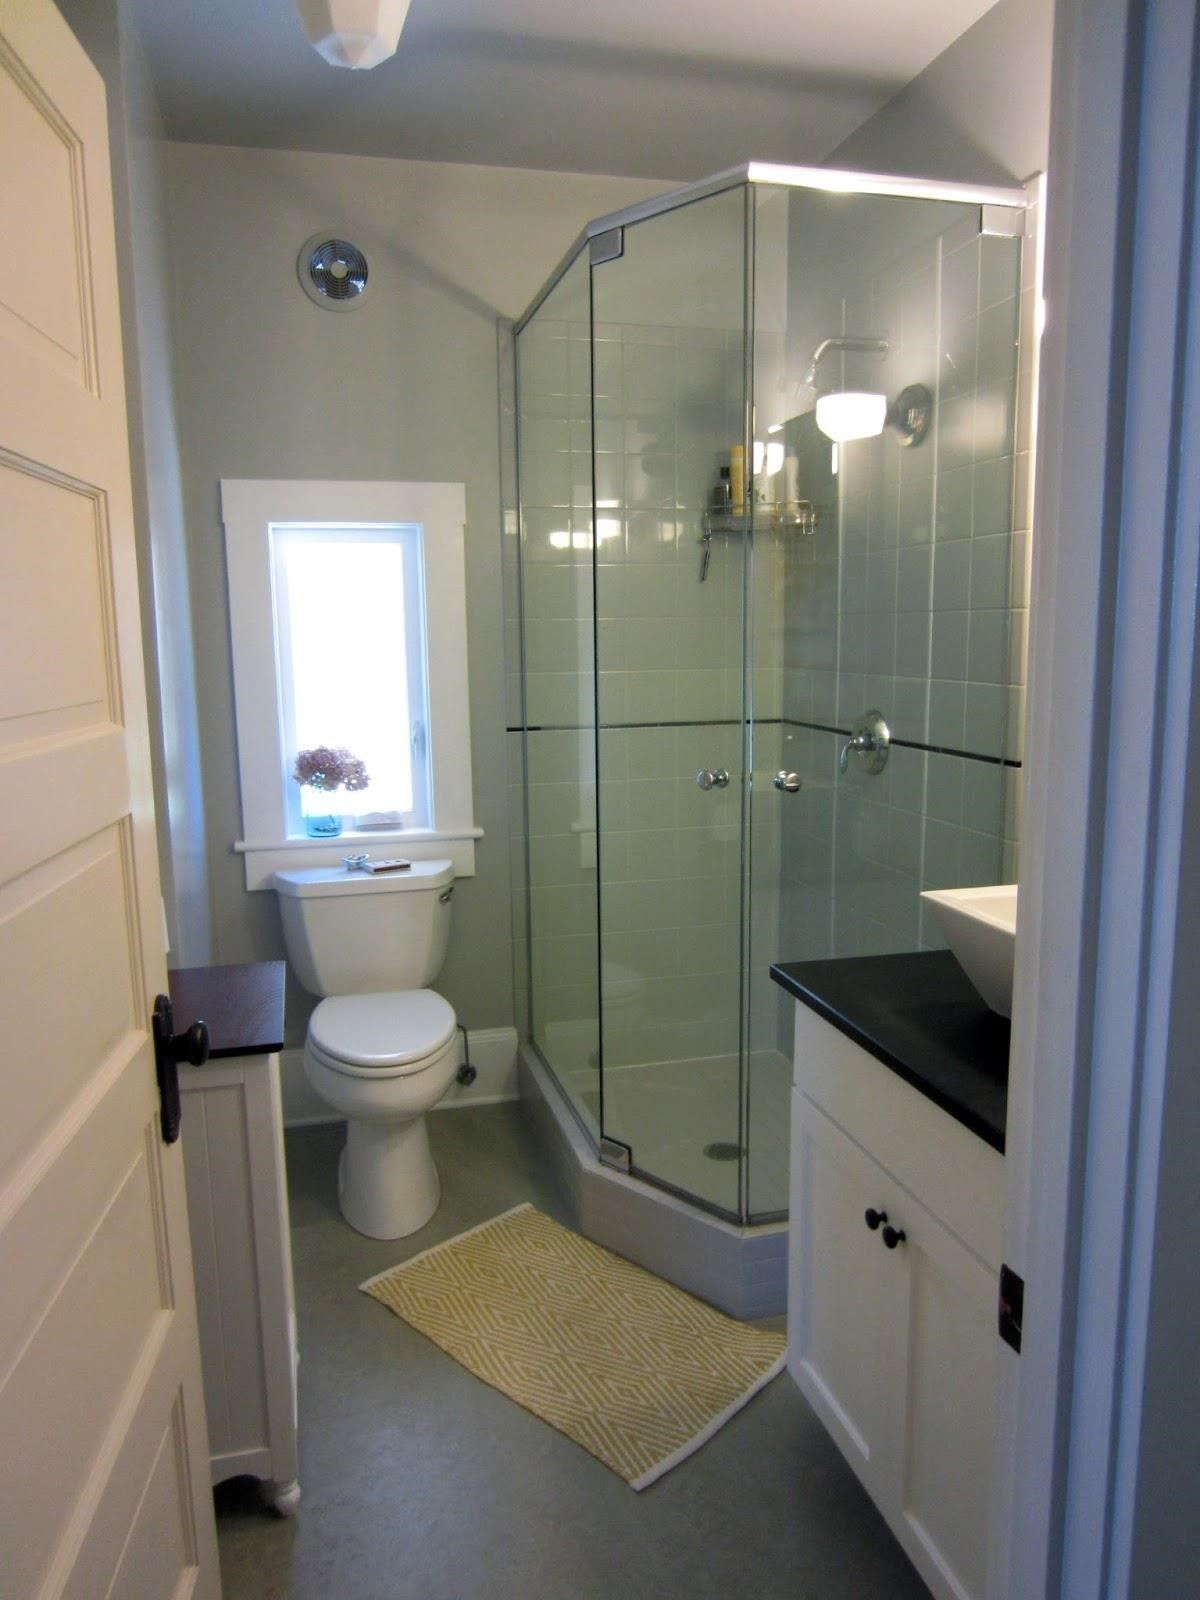 Small Bathroom Remodel Ideas With Shower Only: Simple Small Bathroom Ideas With Shower Only On Small